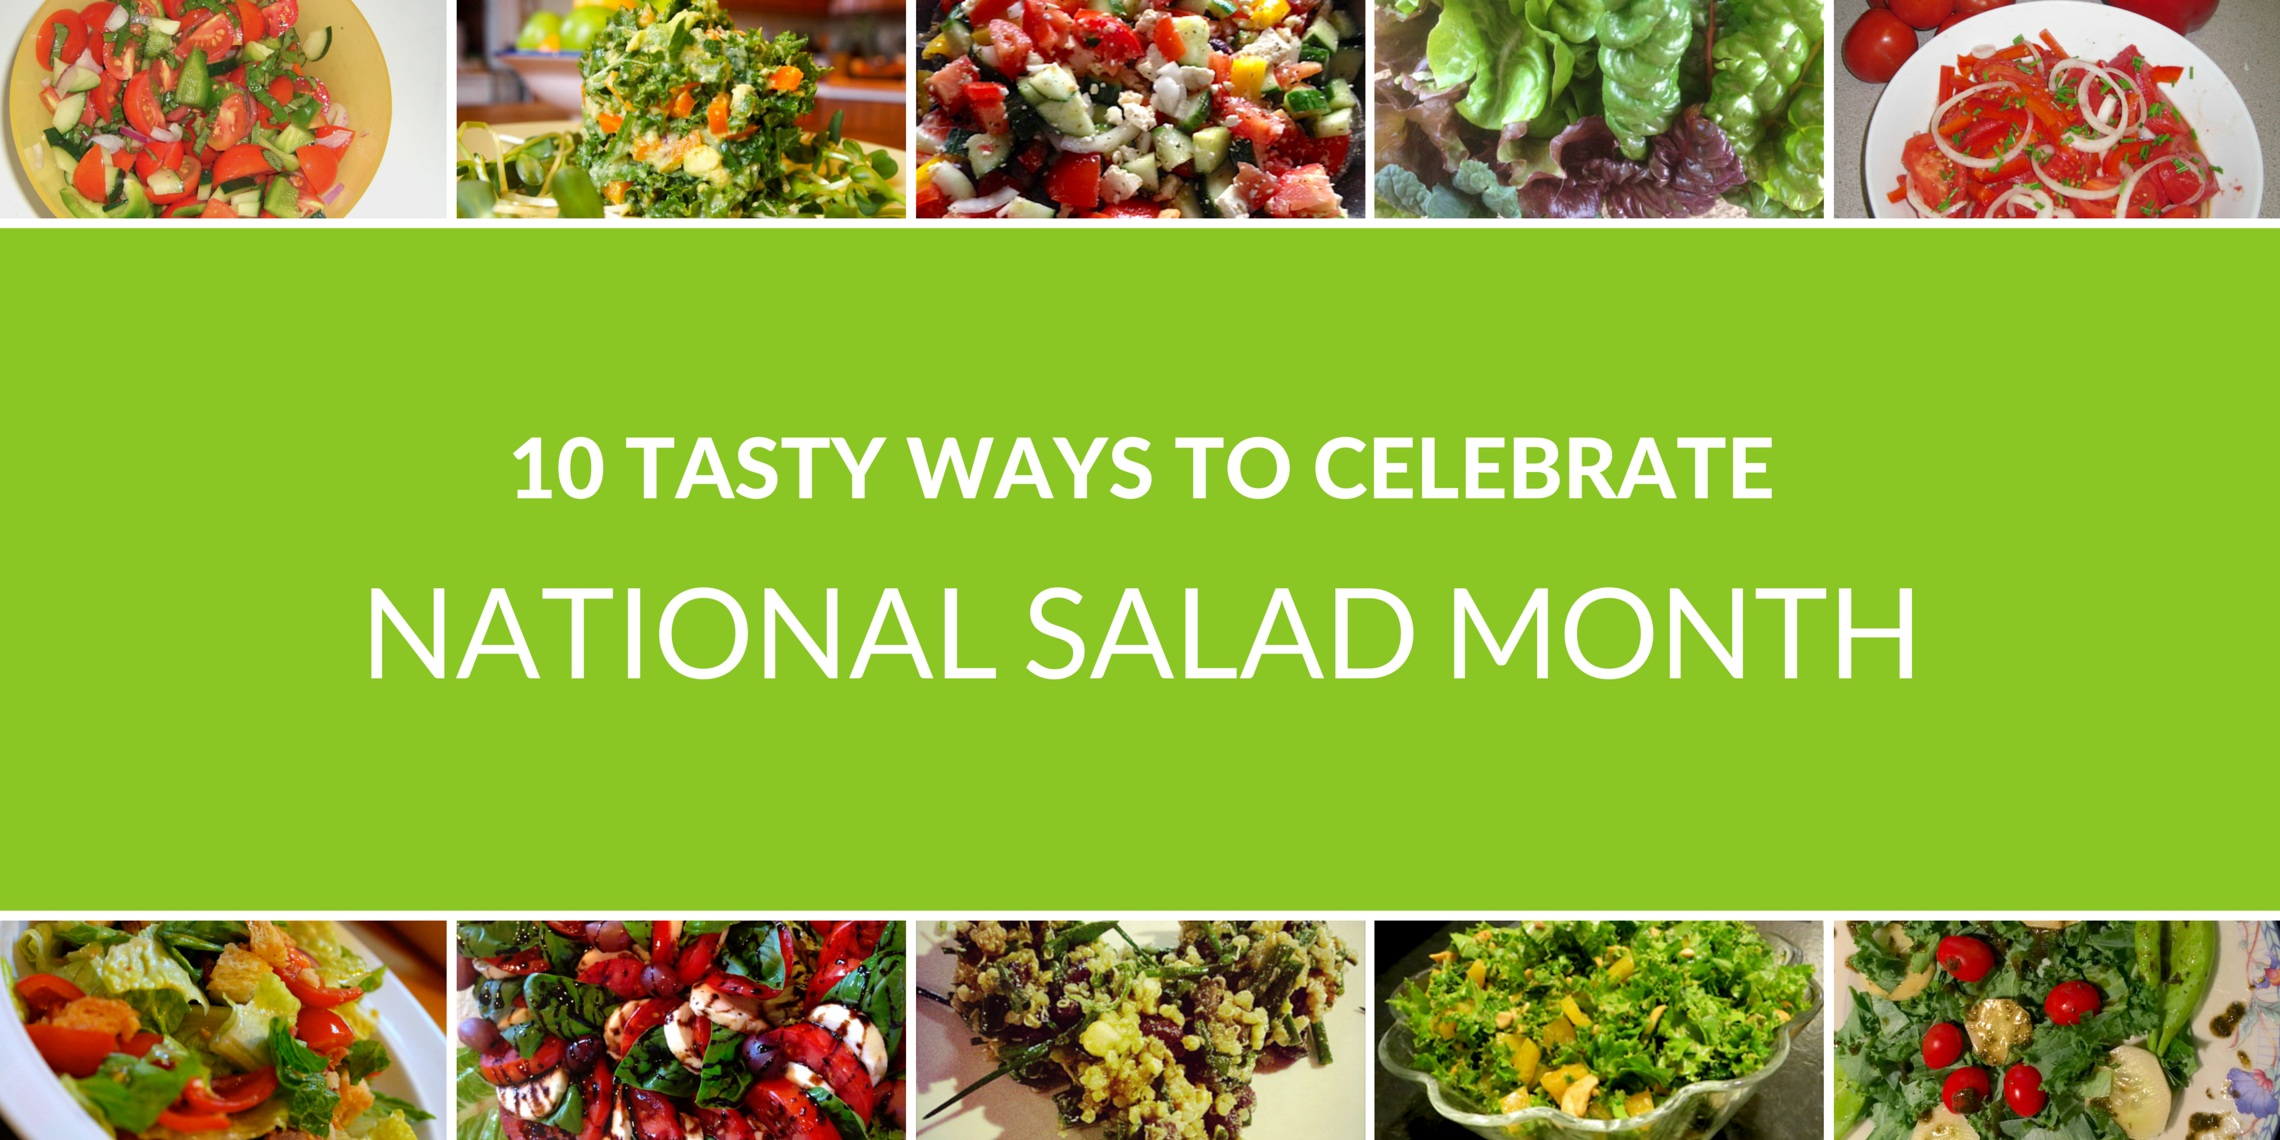 10 Simple Salads You Can Make with Your Garden Harvests